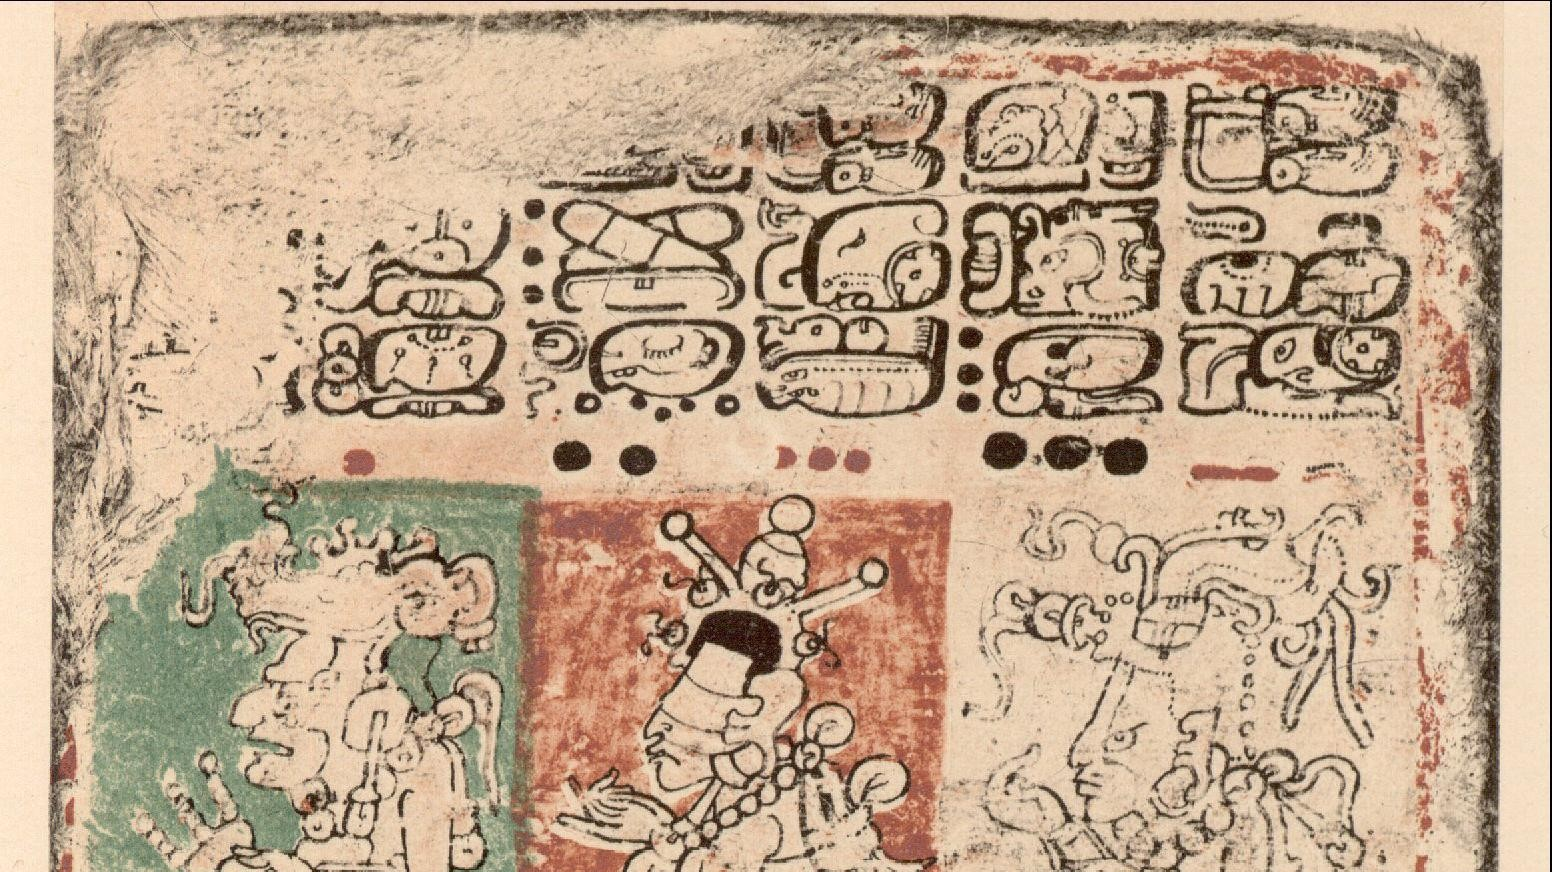 mayan writing translation The maya hieroglypic writing is arguably one of the most visually striking writing systems of the world it is also very complex, with hundreds of unique signs or glyphs in the form of humans, animals.